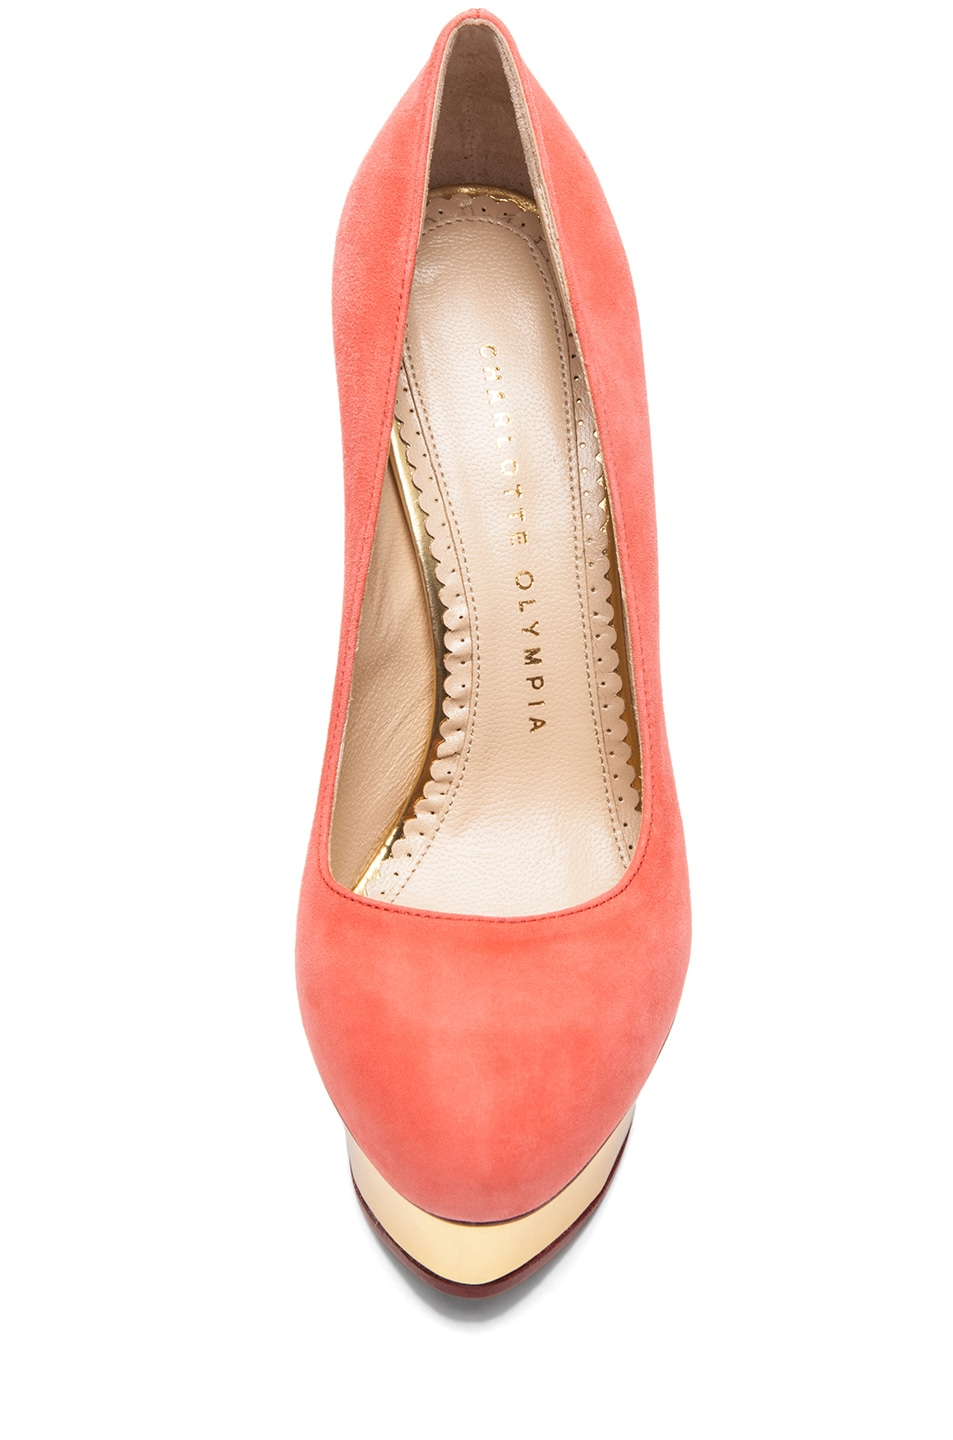 Image 4 of Charlotte Olympia Dolly Puttin On The Glitz Suede Pump in Coral